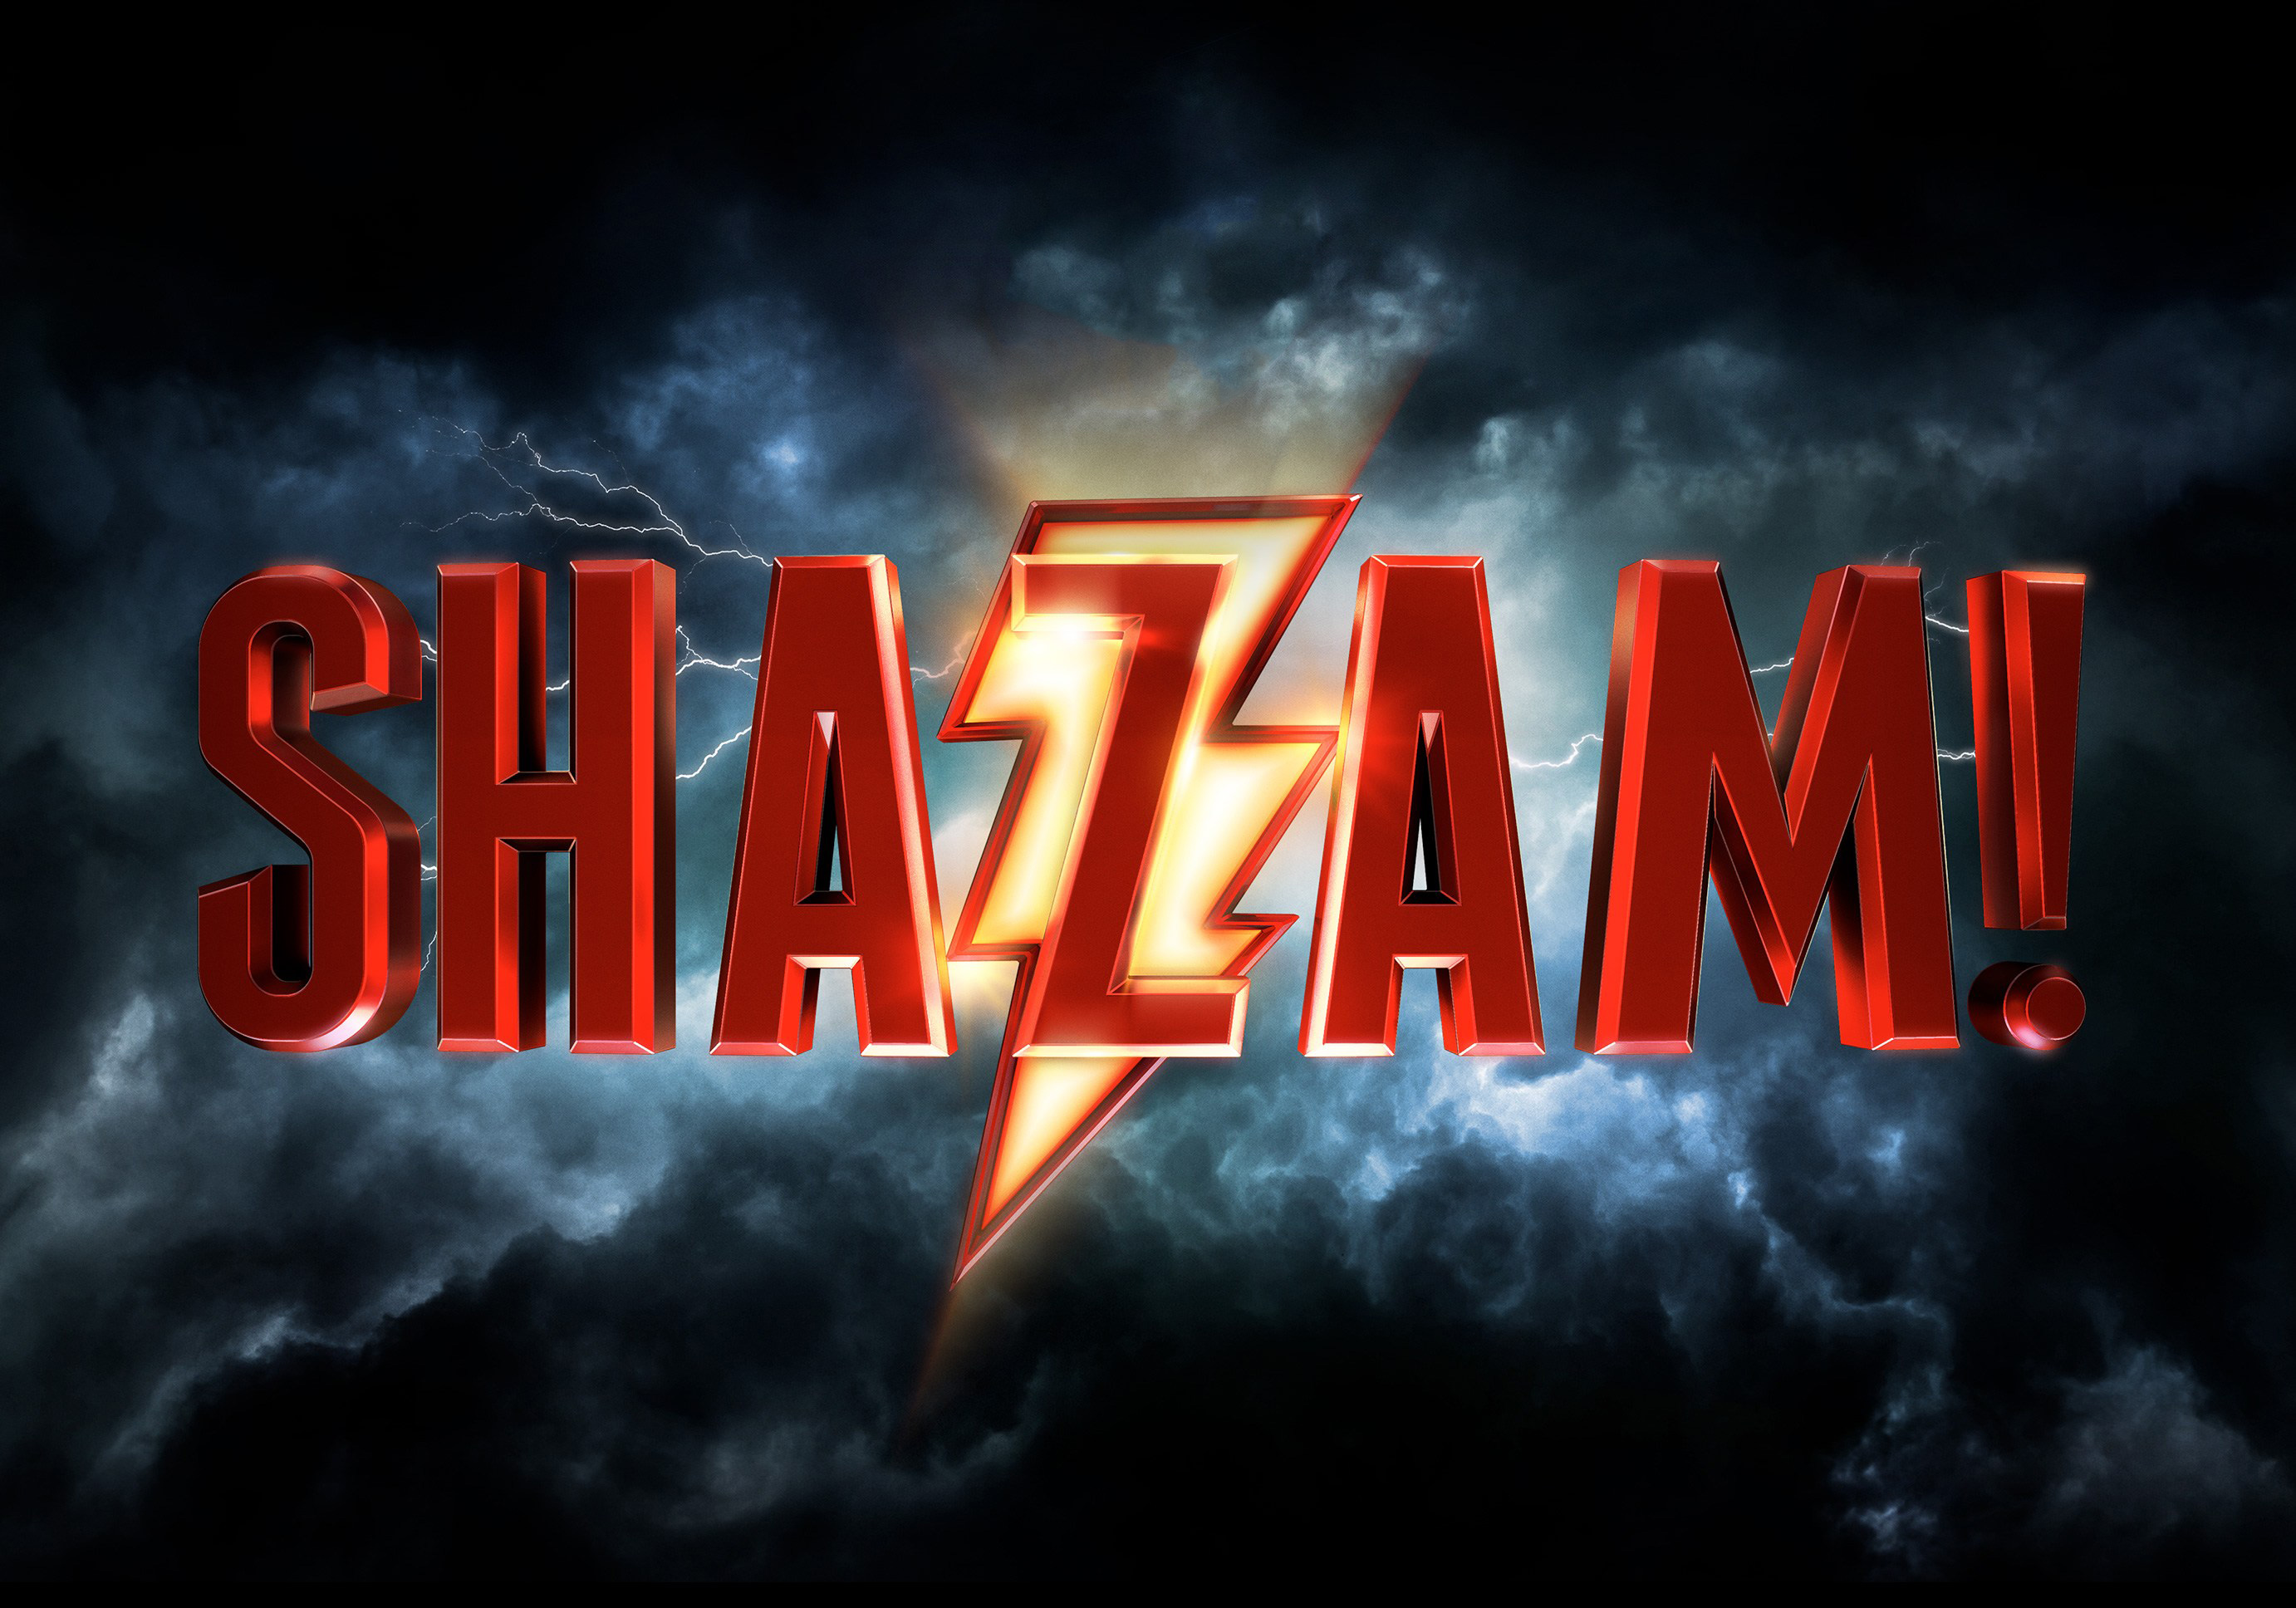 Shazam 2019 Movie Logo Hd Movies 4k Wallpapers Images